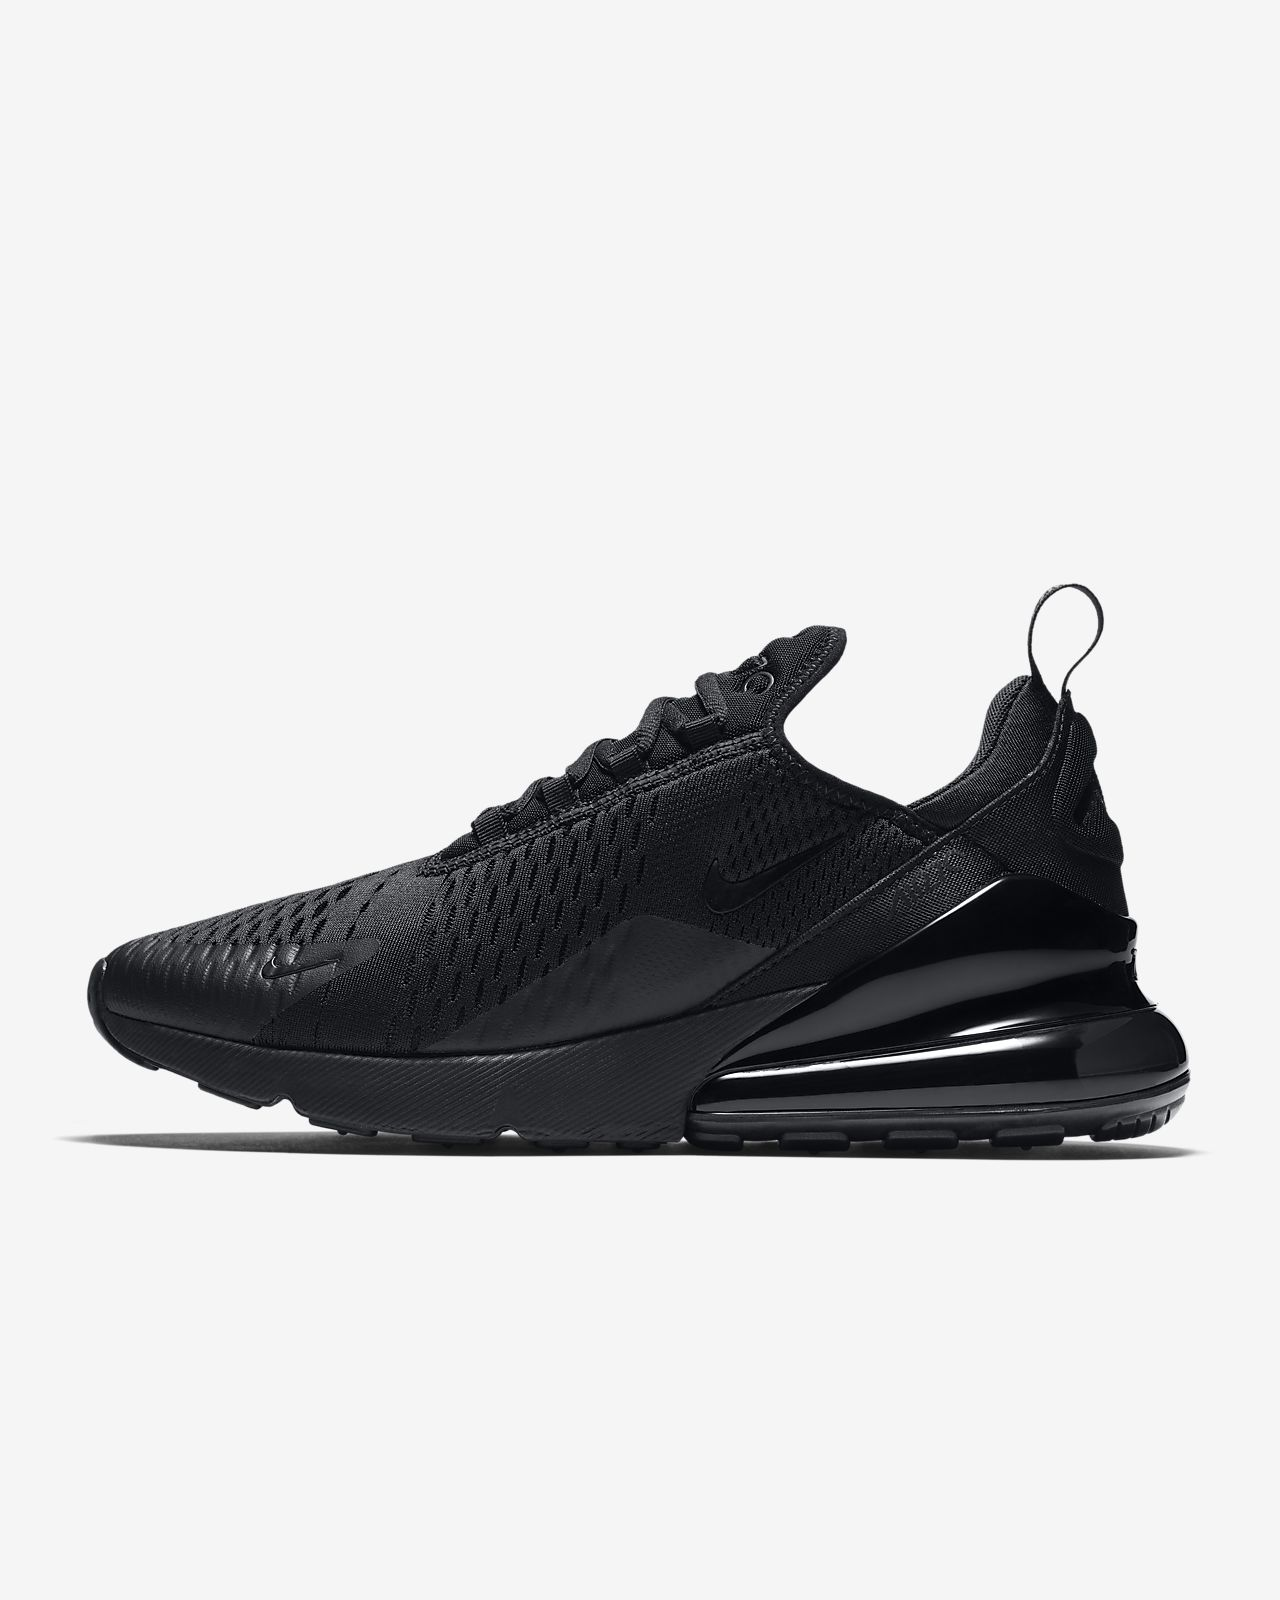 meet bf4e9 e80e3 Men s Shoe. Nike Air Max 270